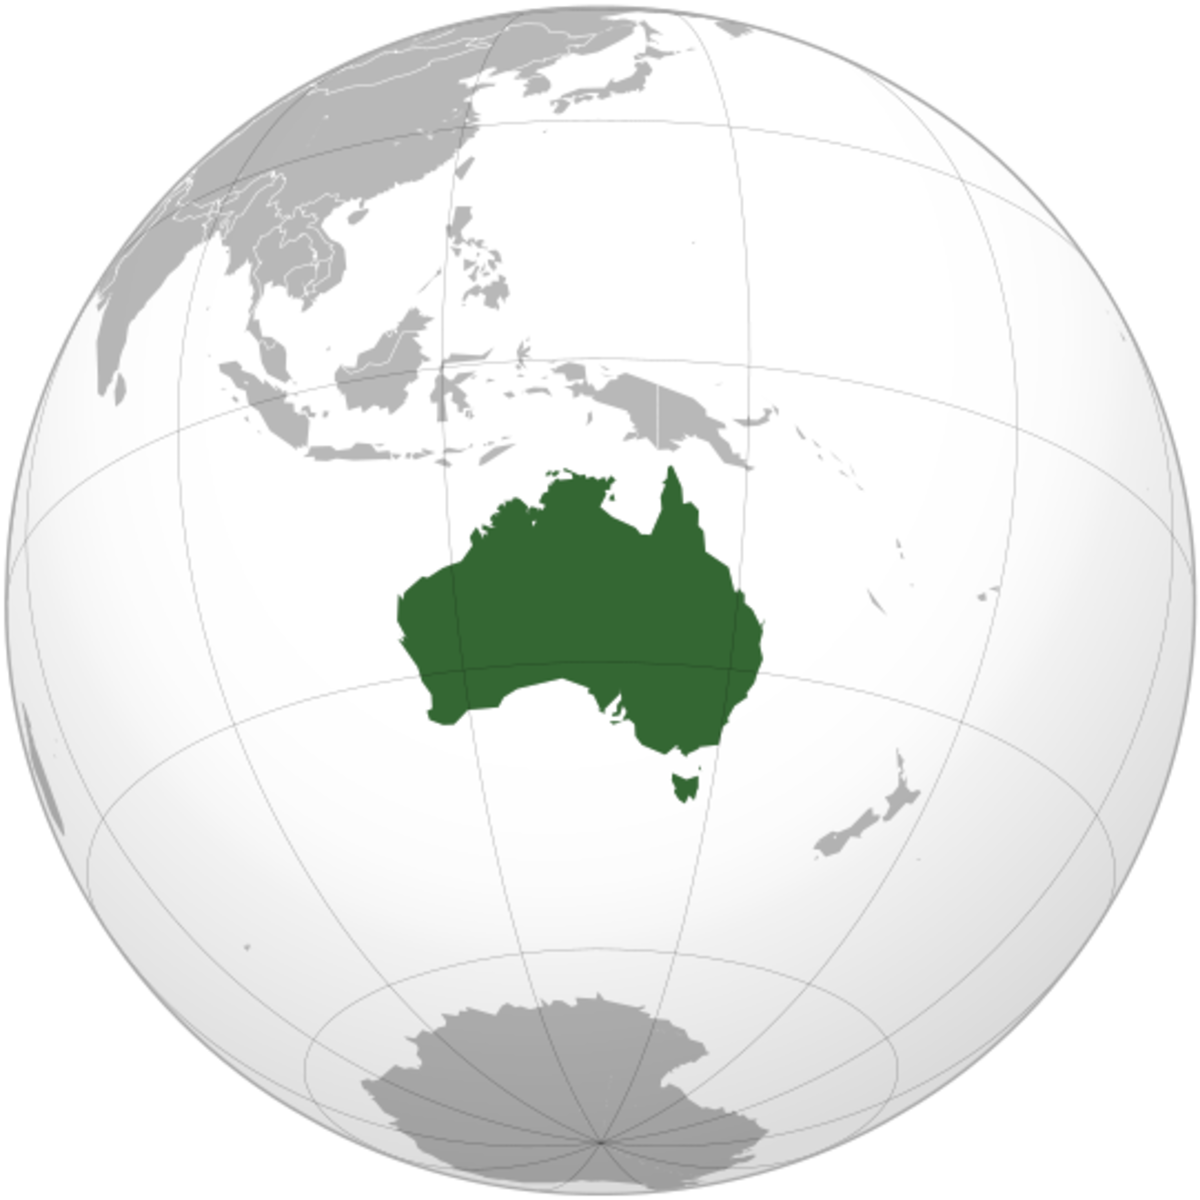 Map showing Australia's location